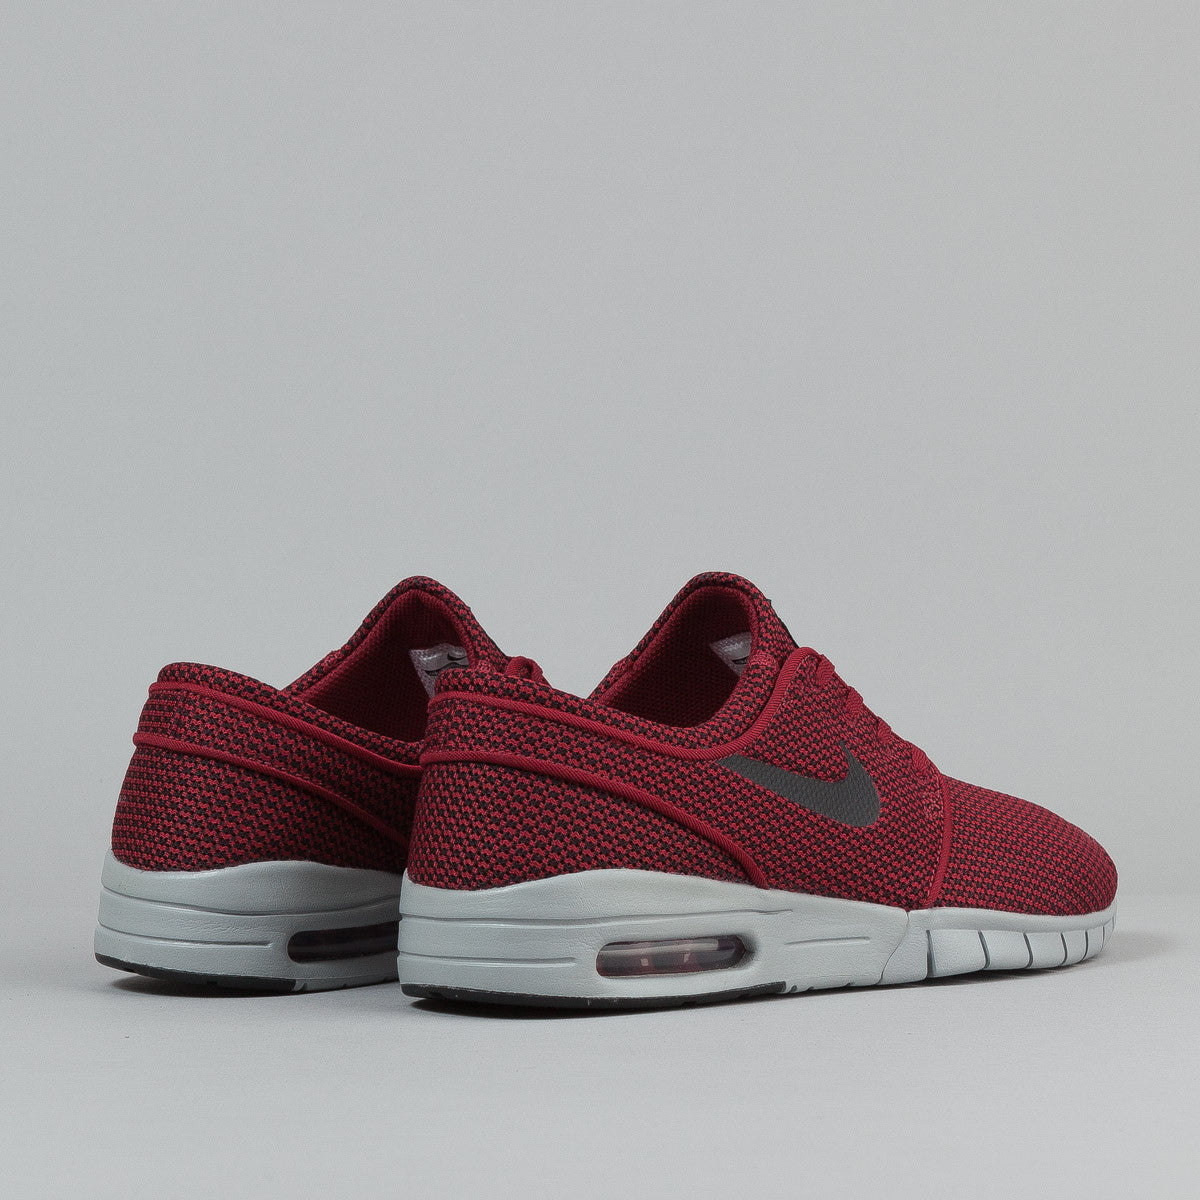 Nike SB Stefan Janoski Max Shoes - Team Red  / Black - Wolf Grey